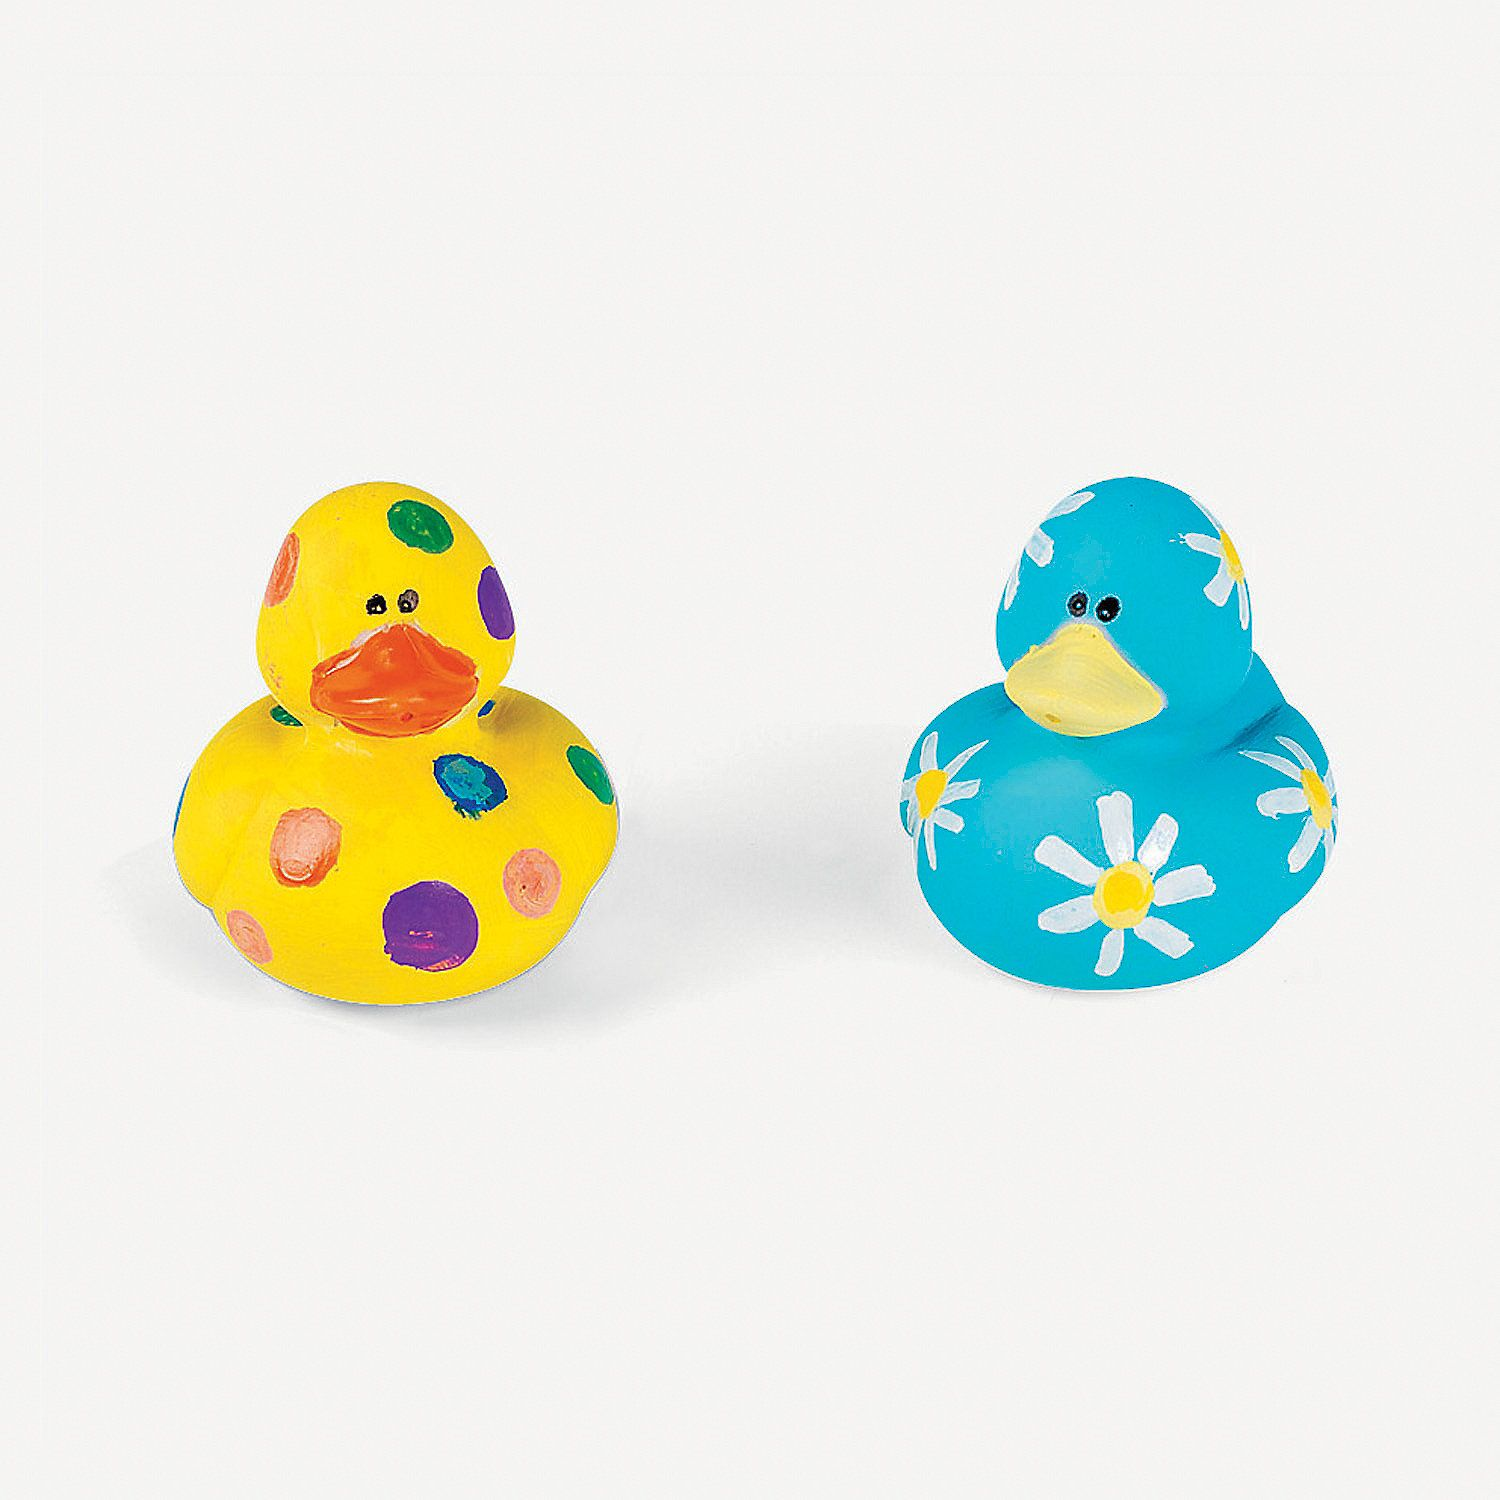 Diy Rubber Duckies 1 Mixed Media Craft Projects Pinterest